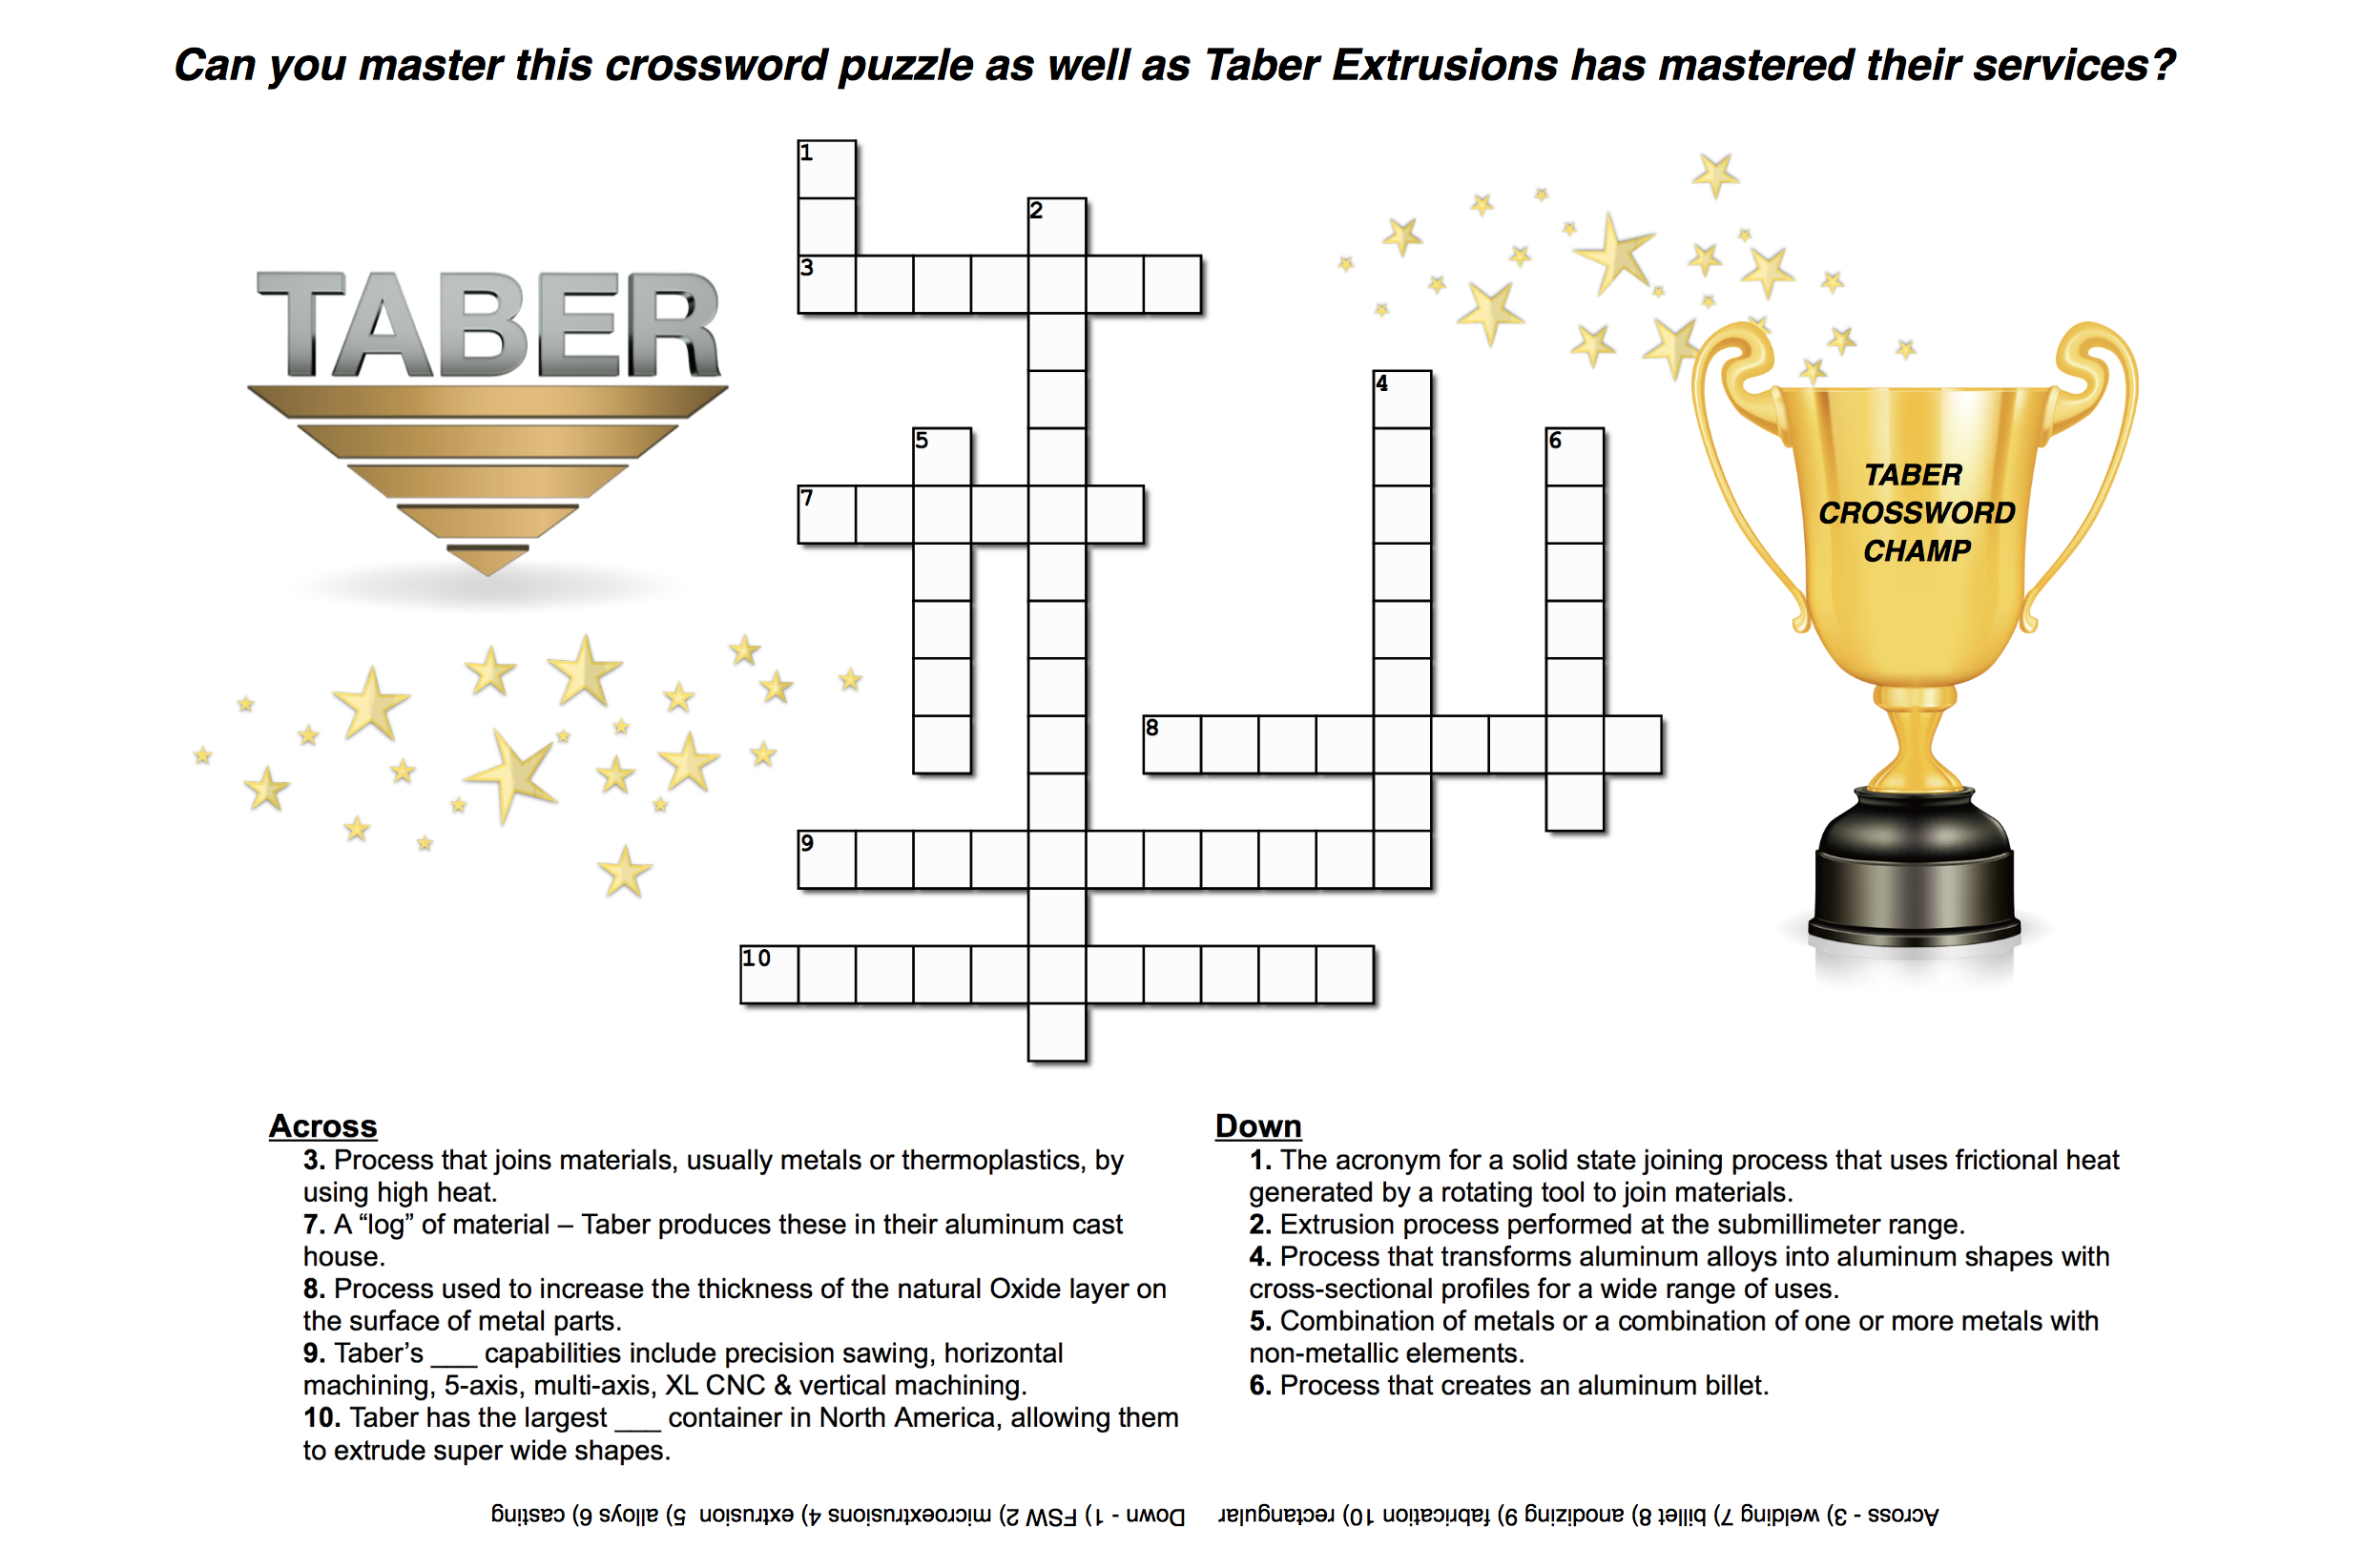 Crossword puzzle about Taber Extrusions services